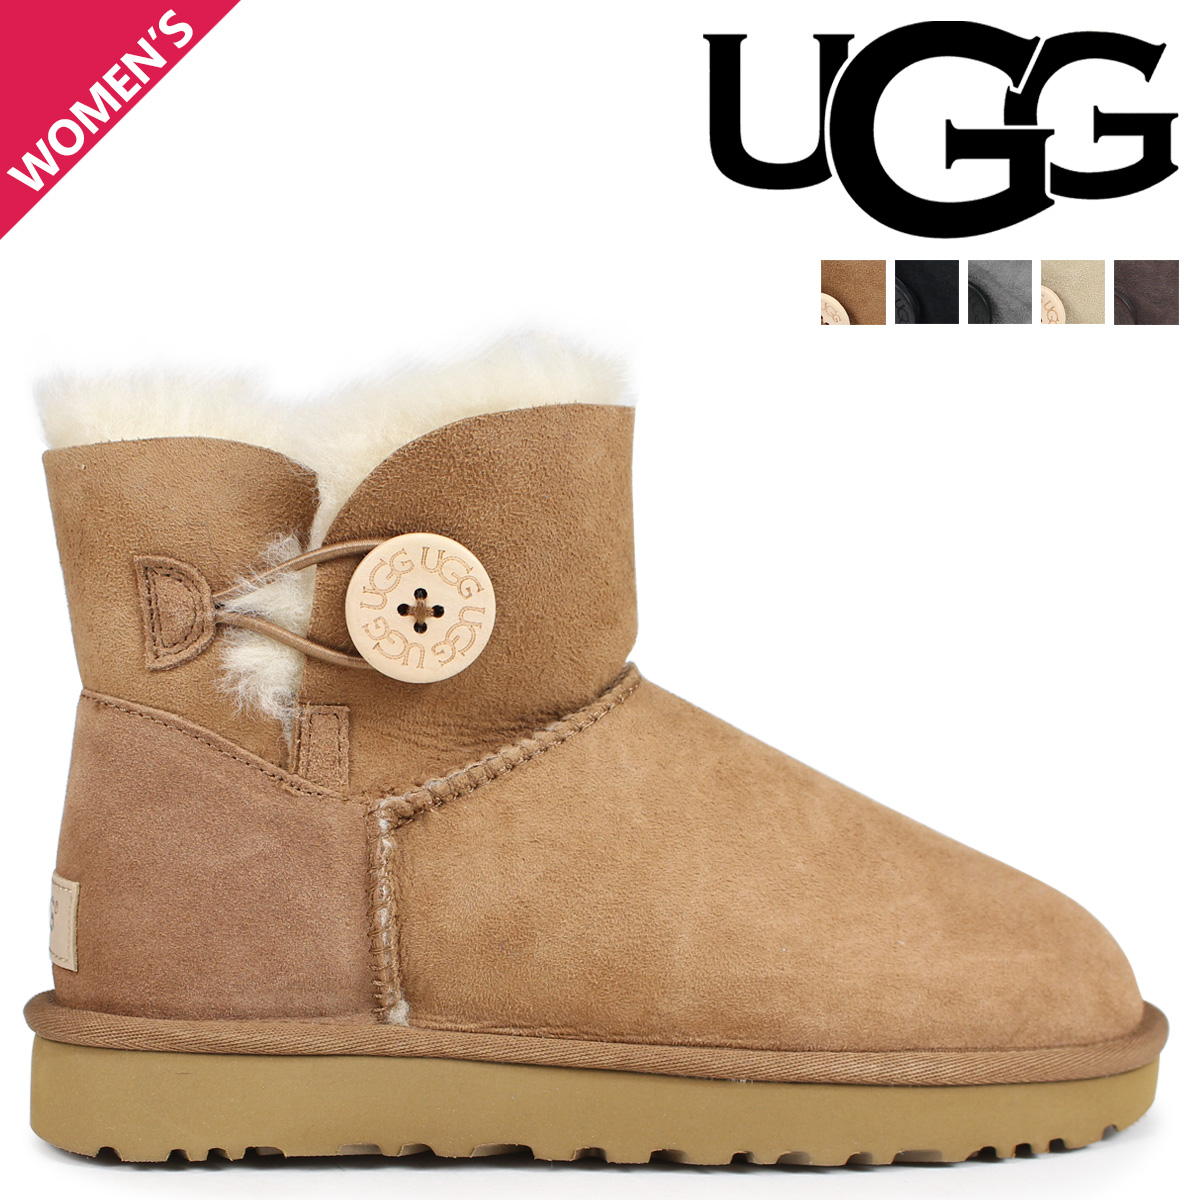 8a4906d567a アグ UGG boots mouton boots mini-Bailey button 2 Lady's 3352 1016422 WOMENS  MINI BAILEY BUTTON 2